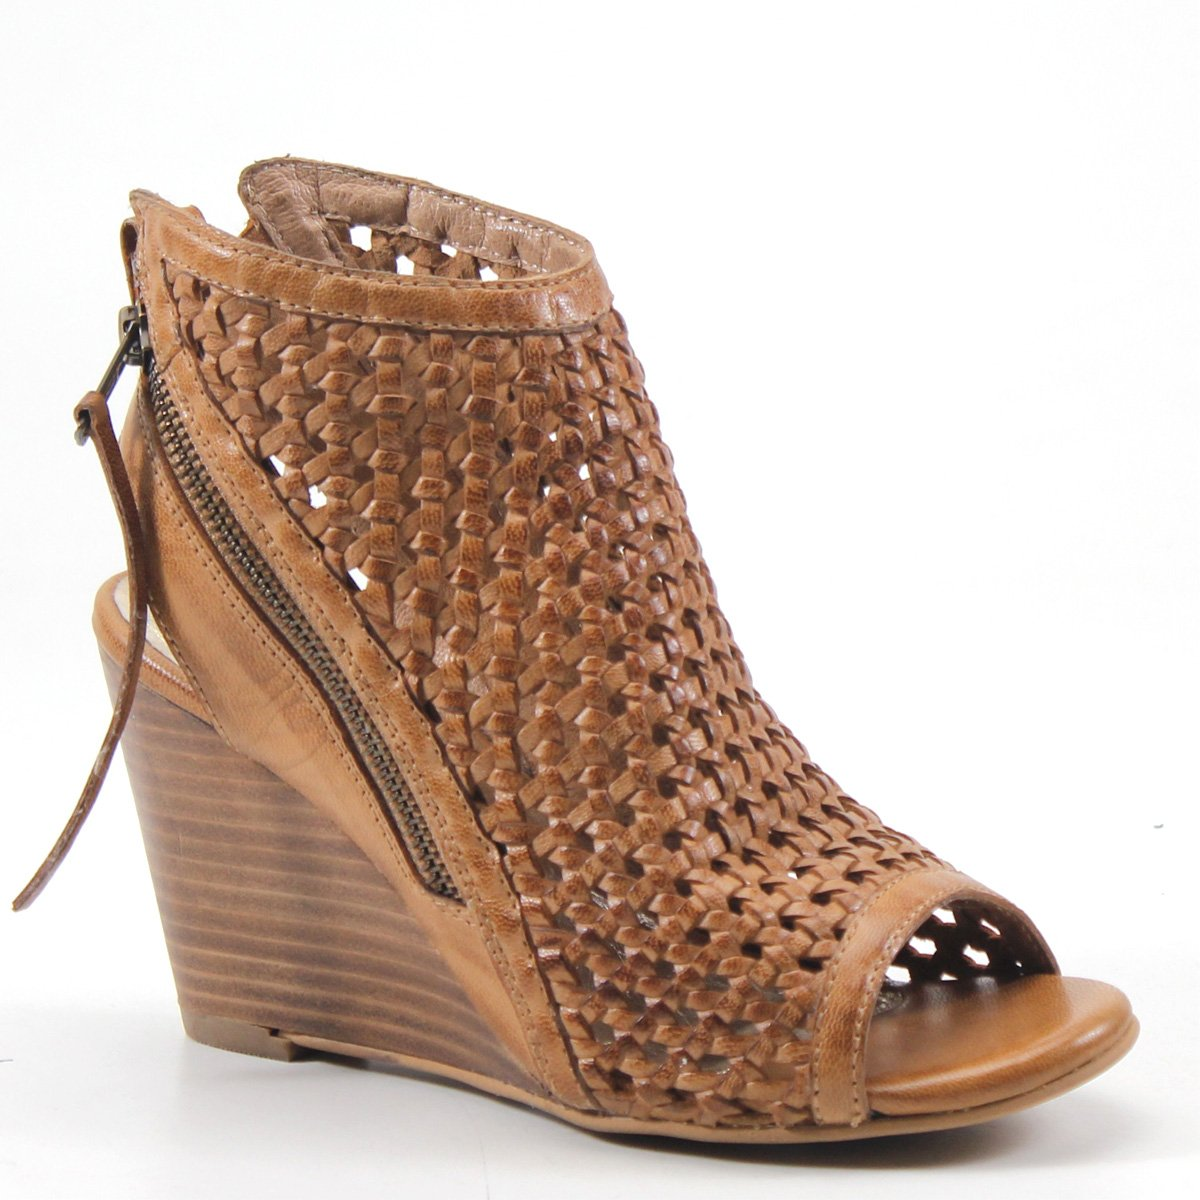 Diba True in Between Woven Leather Wedge B07C9BWQR4 7 B(M) US|Tan Woven Leather